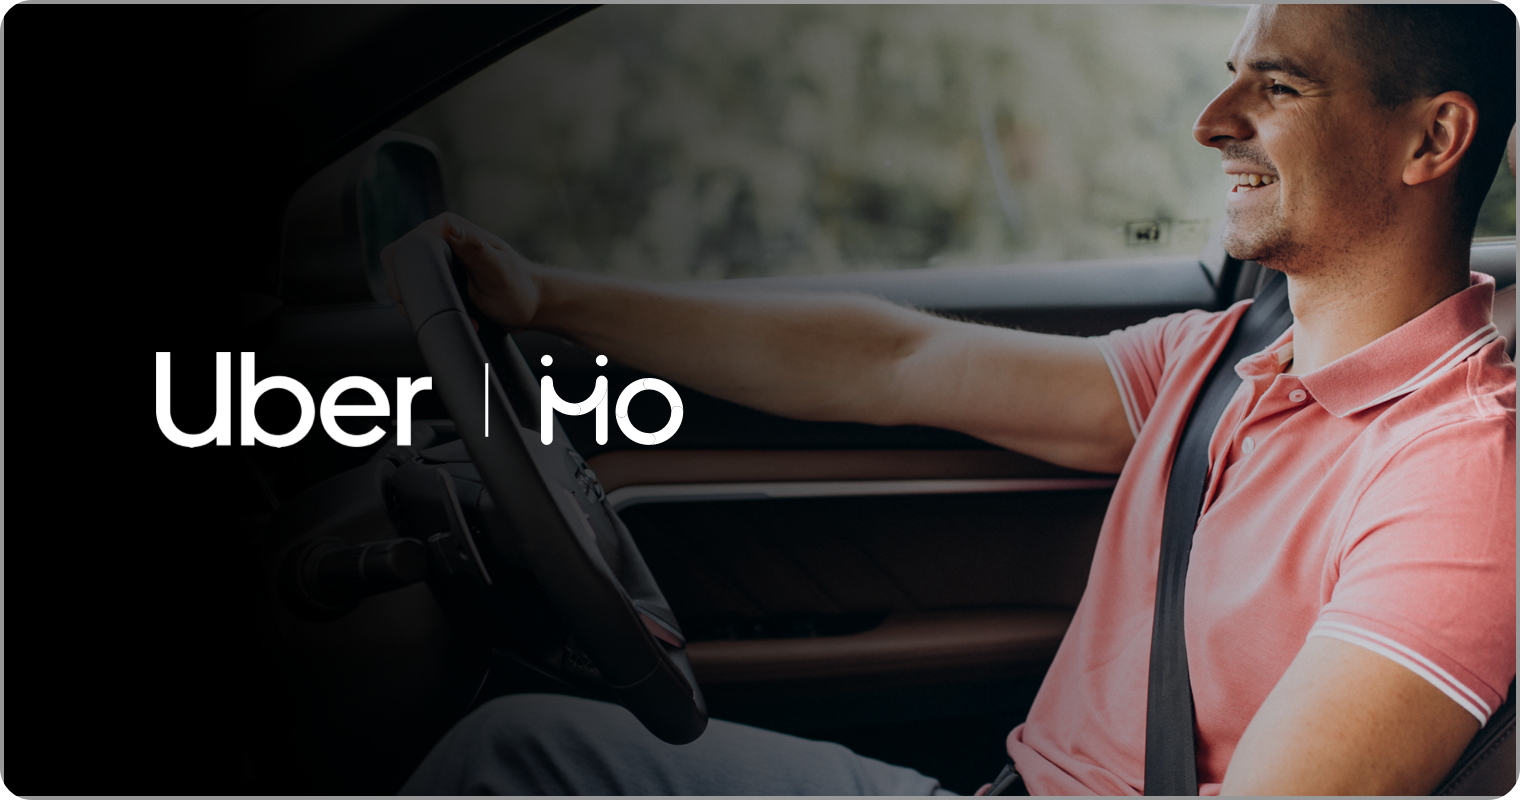 Uber partners with MO Technologies in Ecuador to implement a new microfinancing program to increase financial inclusion for its driver partners during the COVID crisis